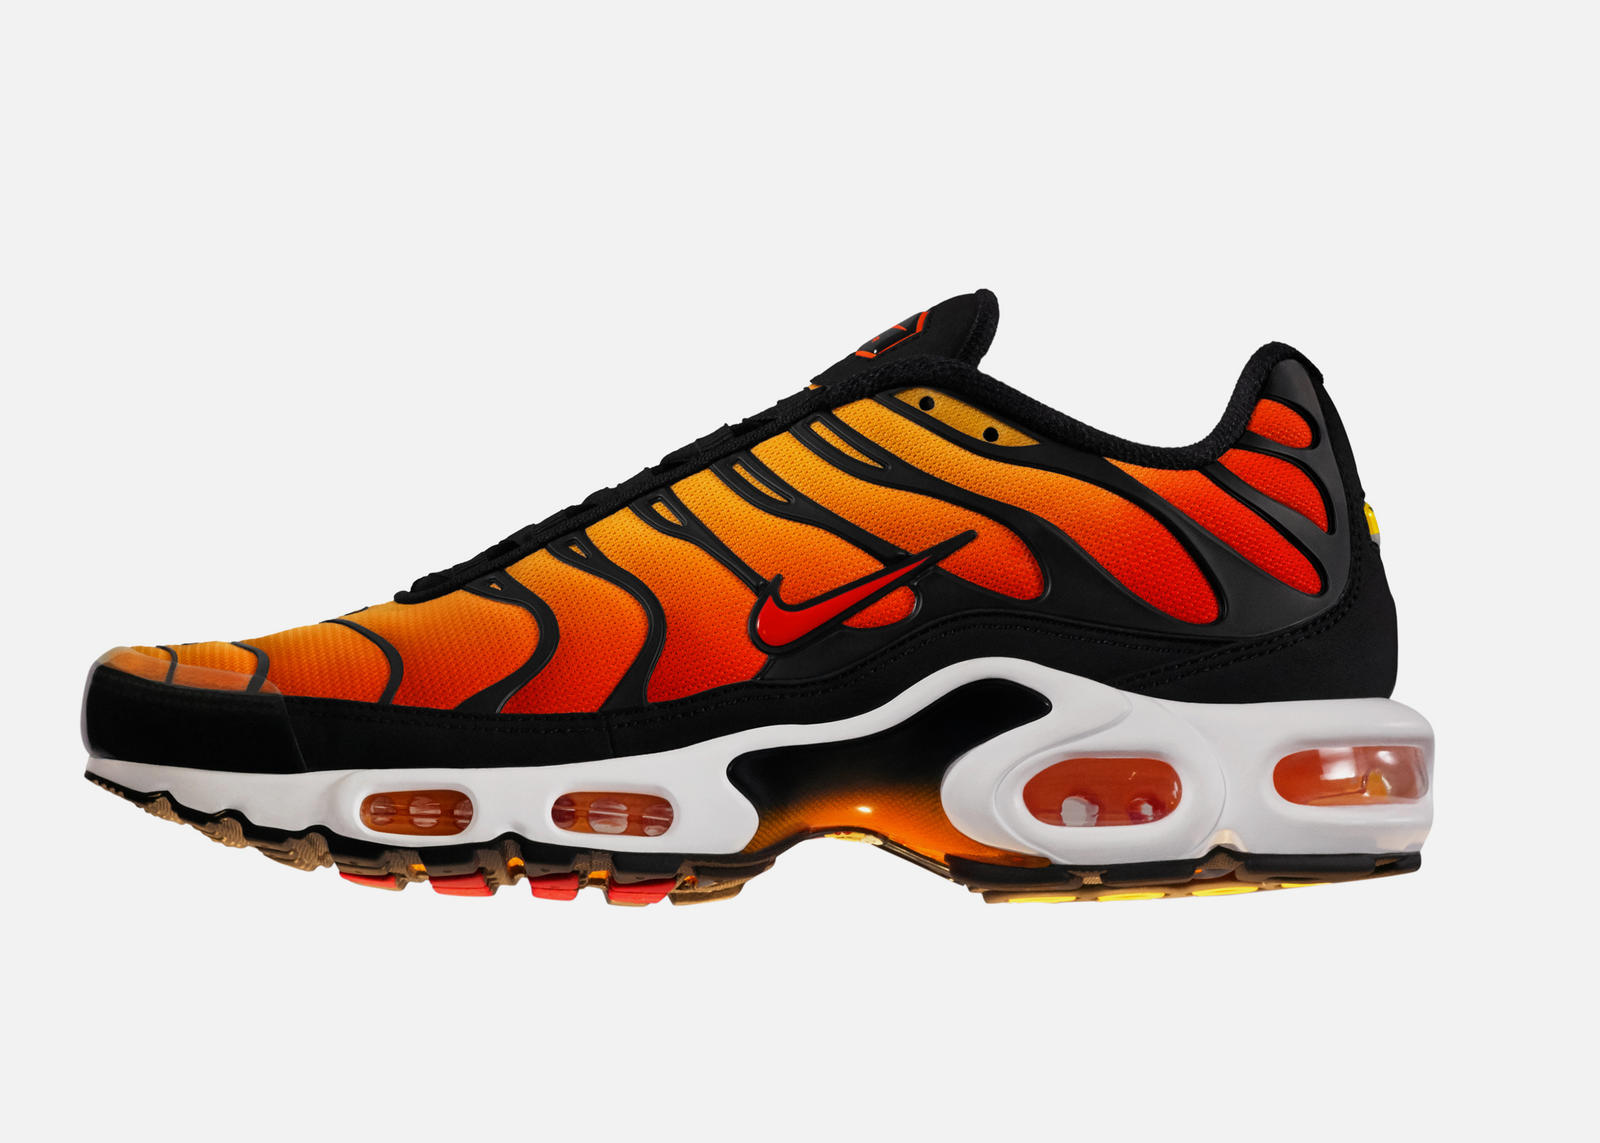 outlet store cbbfe bc7e5 The Untold Story of the Nike Air Max Plus 19